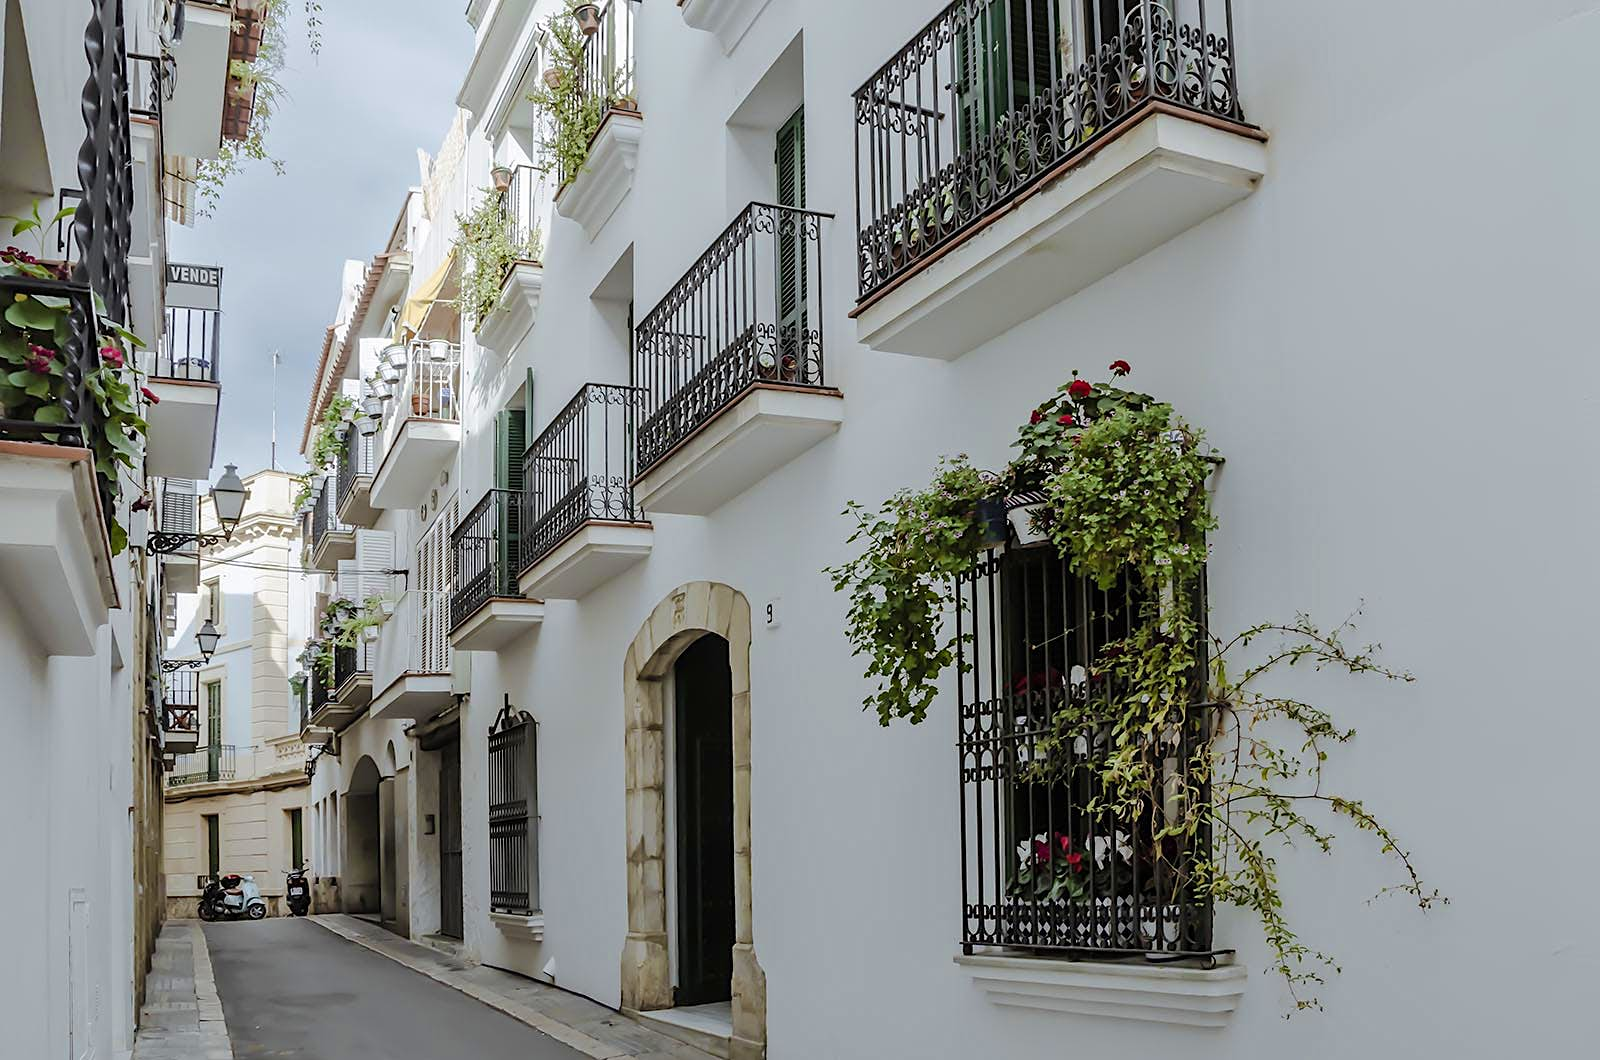 White houses in an alley in Sitges, Spain.